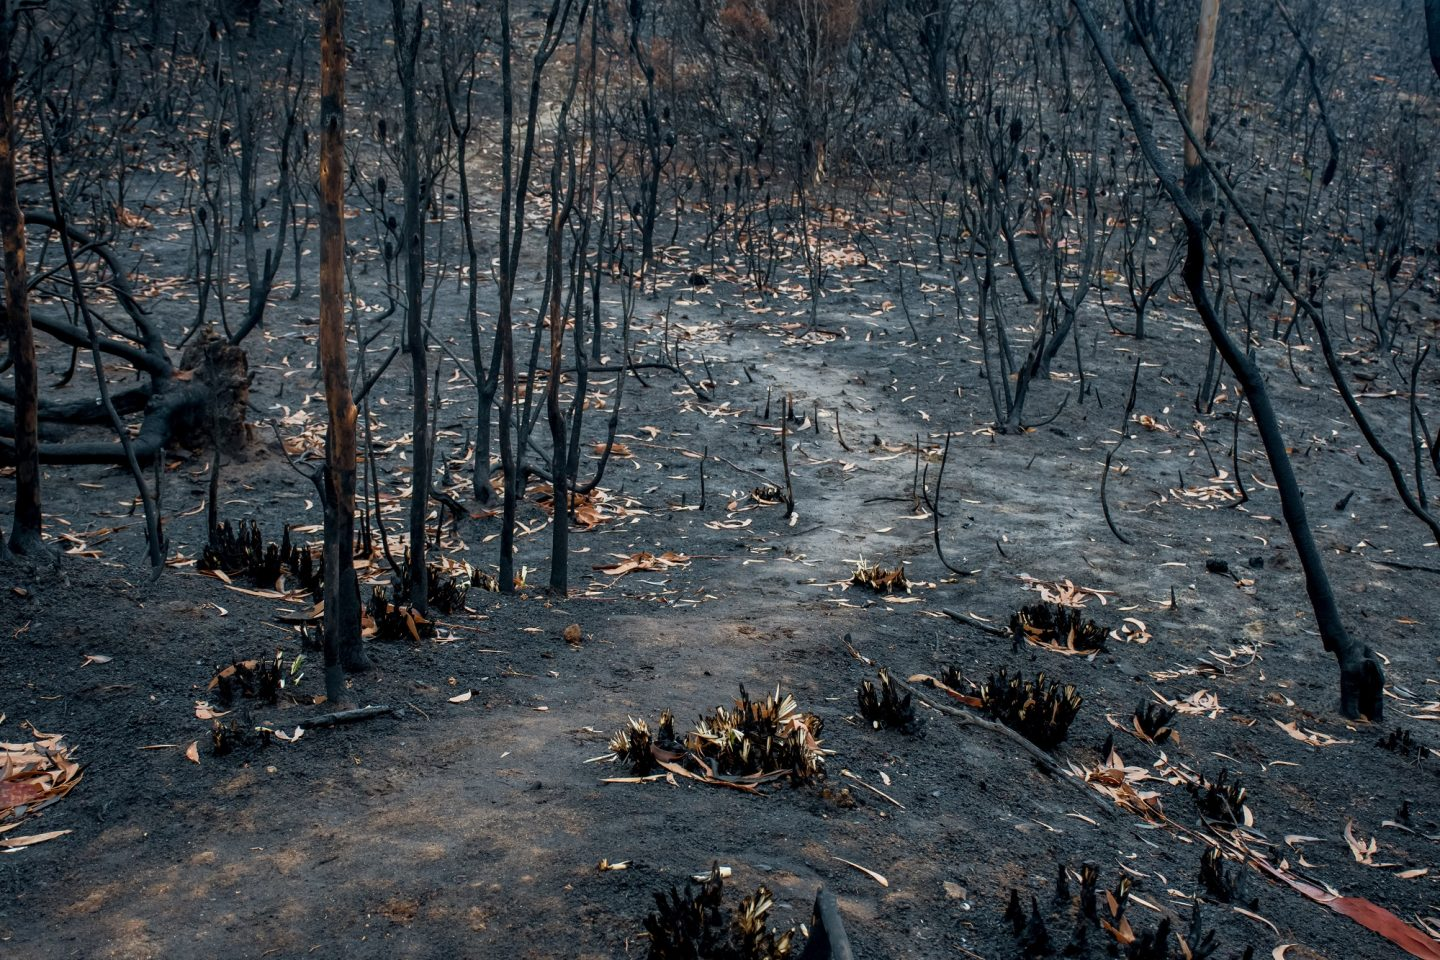 Bushfire aftermath in Blue Mountains